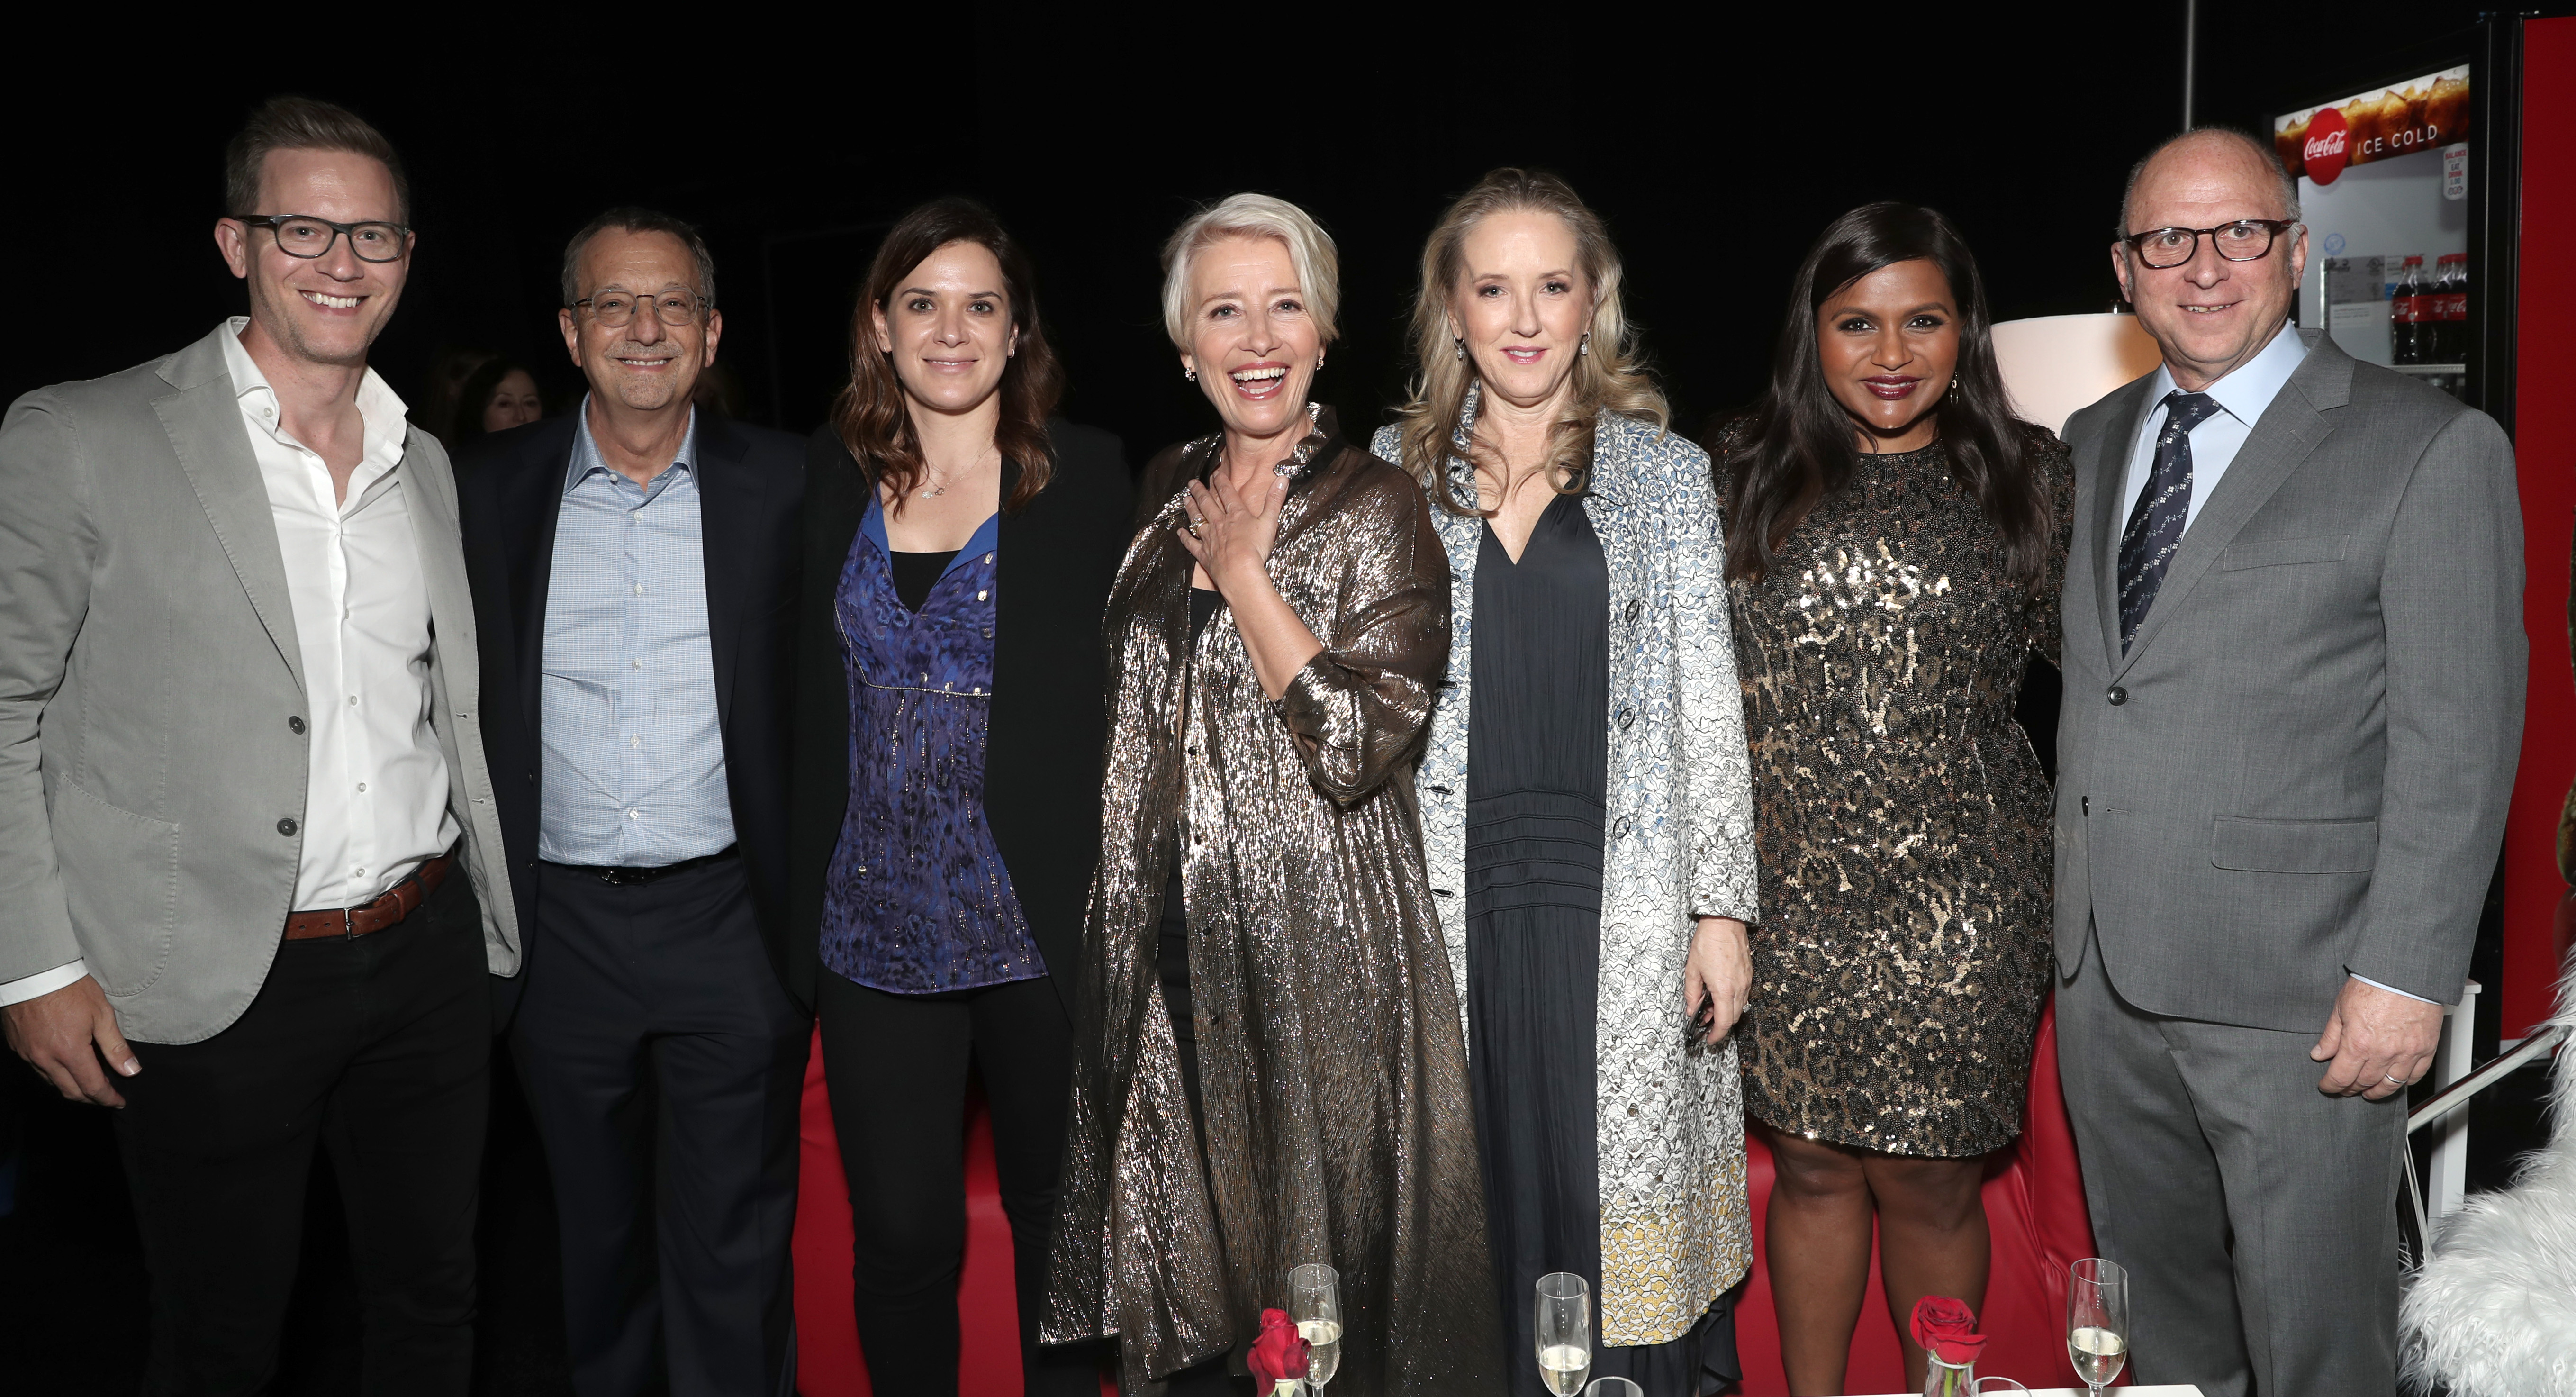 Amazon Studios Co Head of Movies Matt Newman, Amazon Studios Co Head of Movies Julie Rapaport, Emma Thompson, Amazon Studios Head Jennifer Salke, Mindy Kaling and Amazon Studios Head of Marketing and Distribution Bob BerneyAmazon Studios Presentation and Screening of 'Late Night', CinemaCon, Las Vegas, USA - 03 Apr 2019